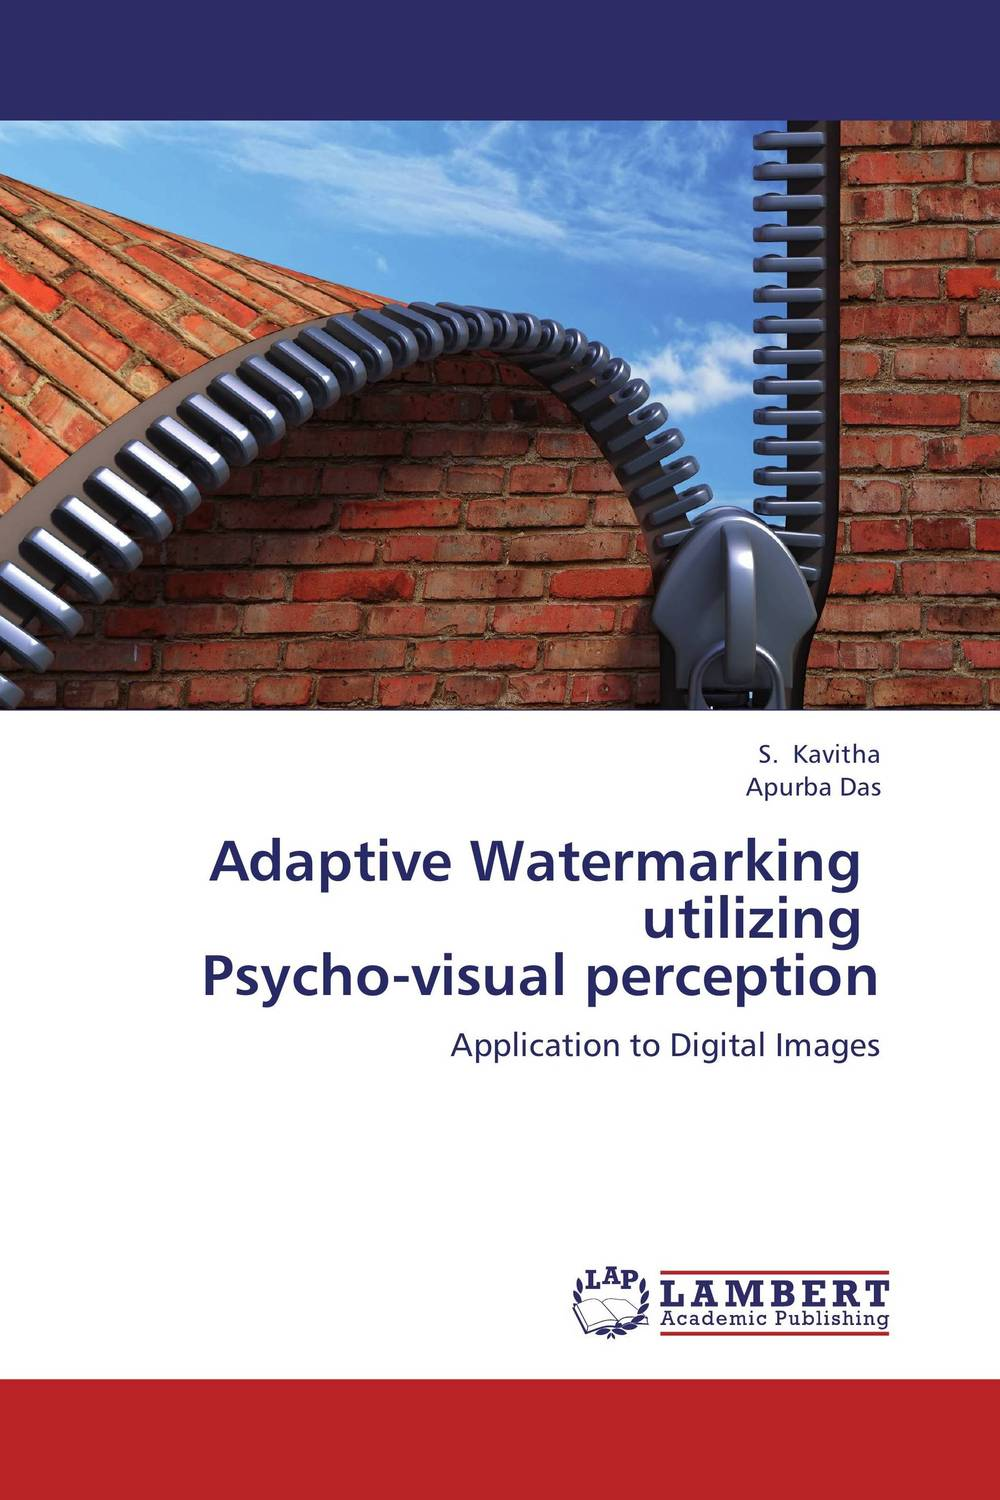 Adaptive Watermarking utilizing Psycho-visual perception performance evaluation of color image watermarking